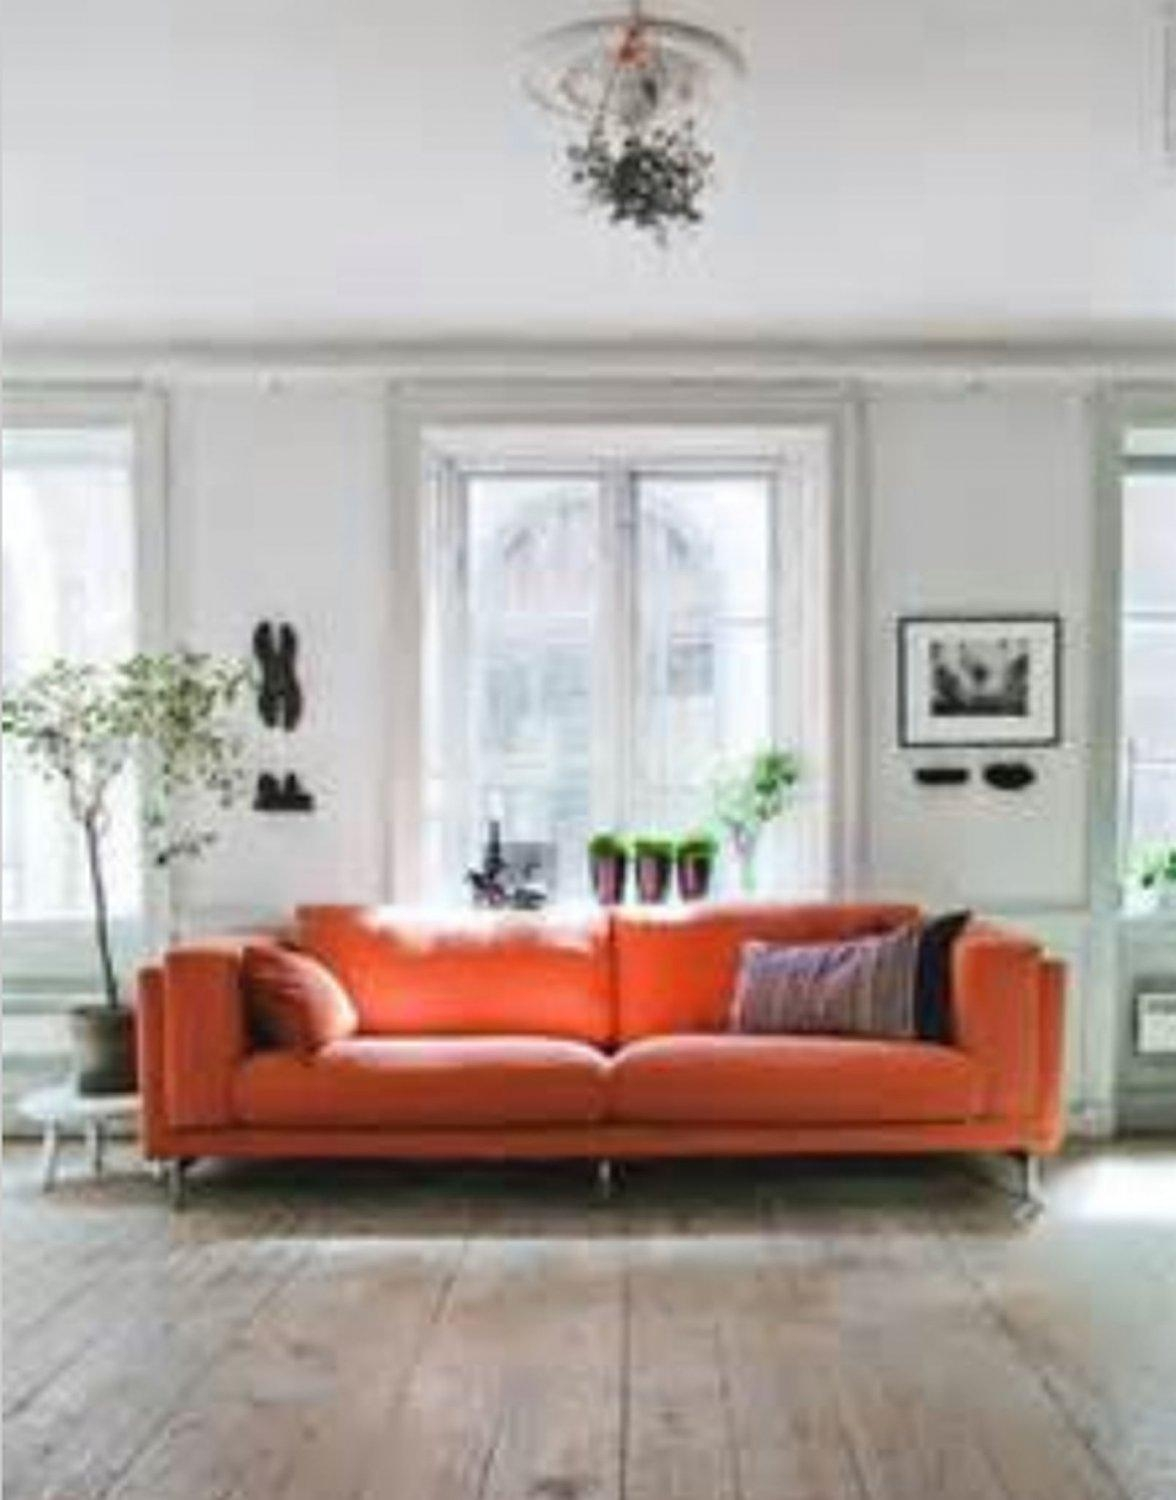 Ikea Nockeby 3 Seat Sofa Slipcover Cover Risane Orange Linen Blend Intended For Orange Ikea Sofas (Image 10 of 20)